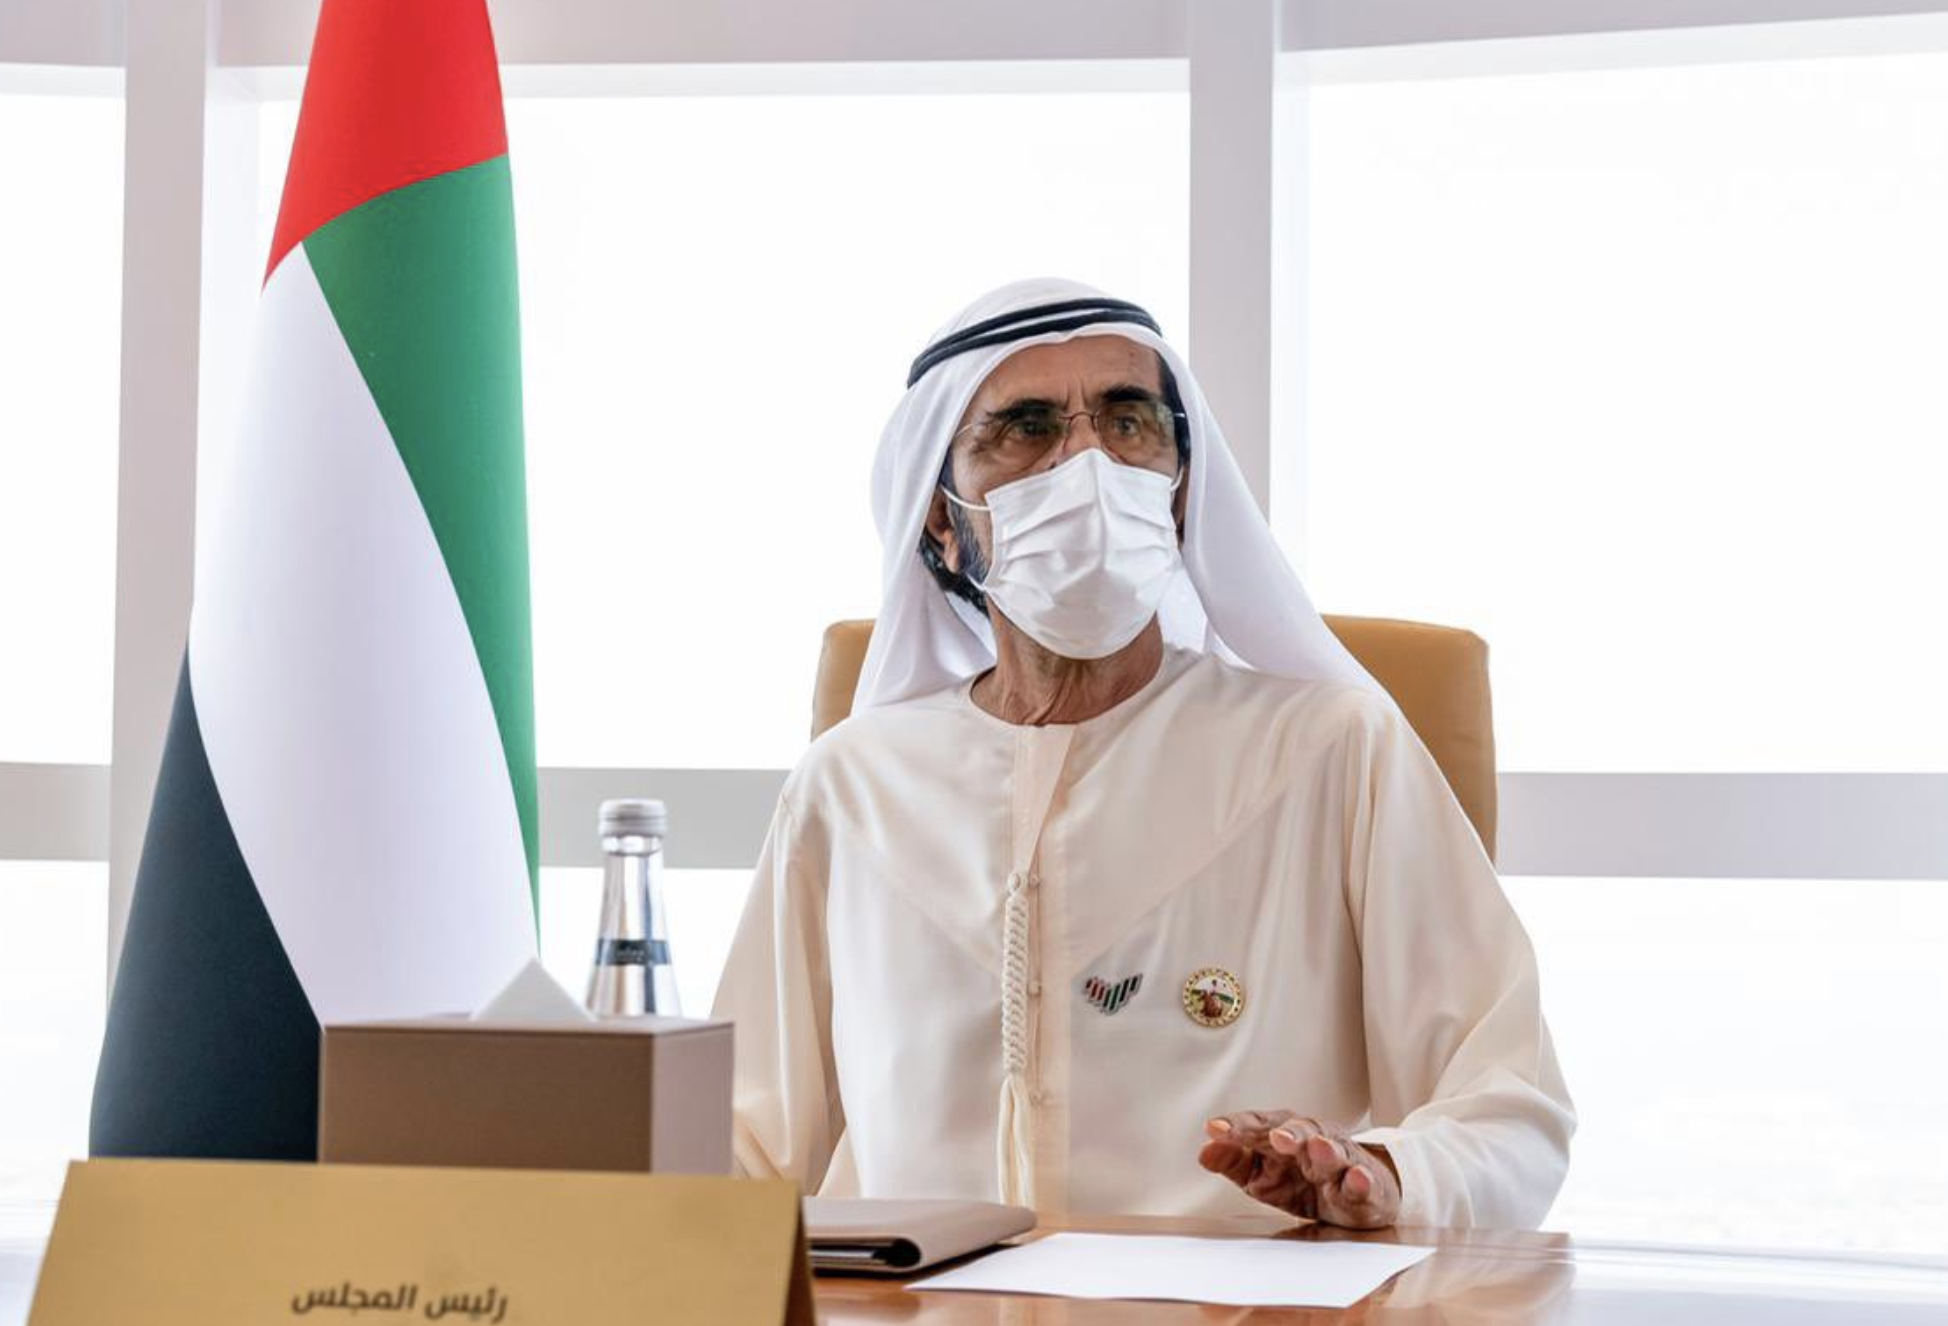 UAE ready for Expo 2020: Sheikh Mohammed